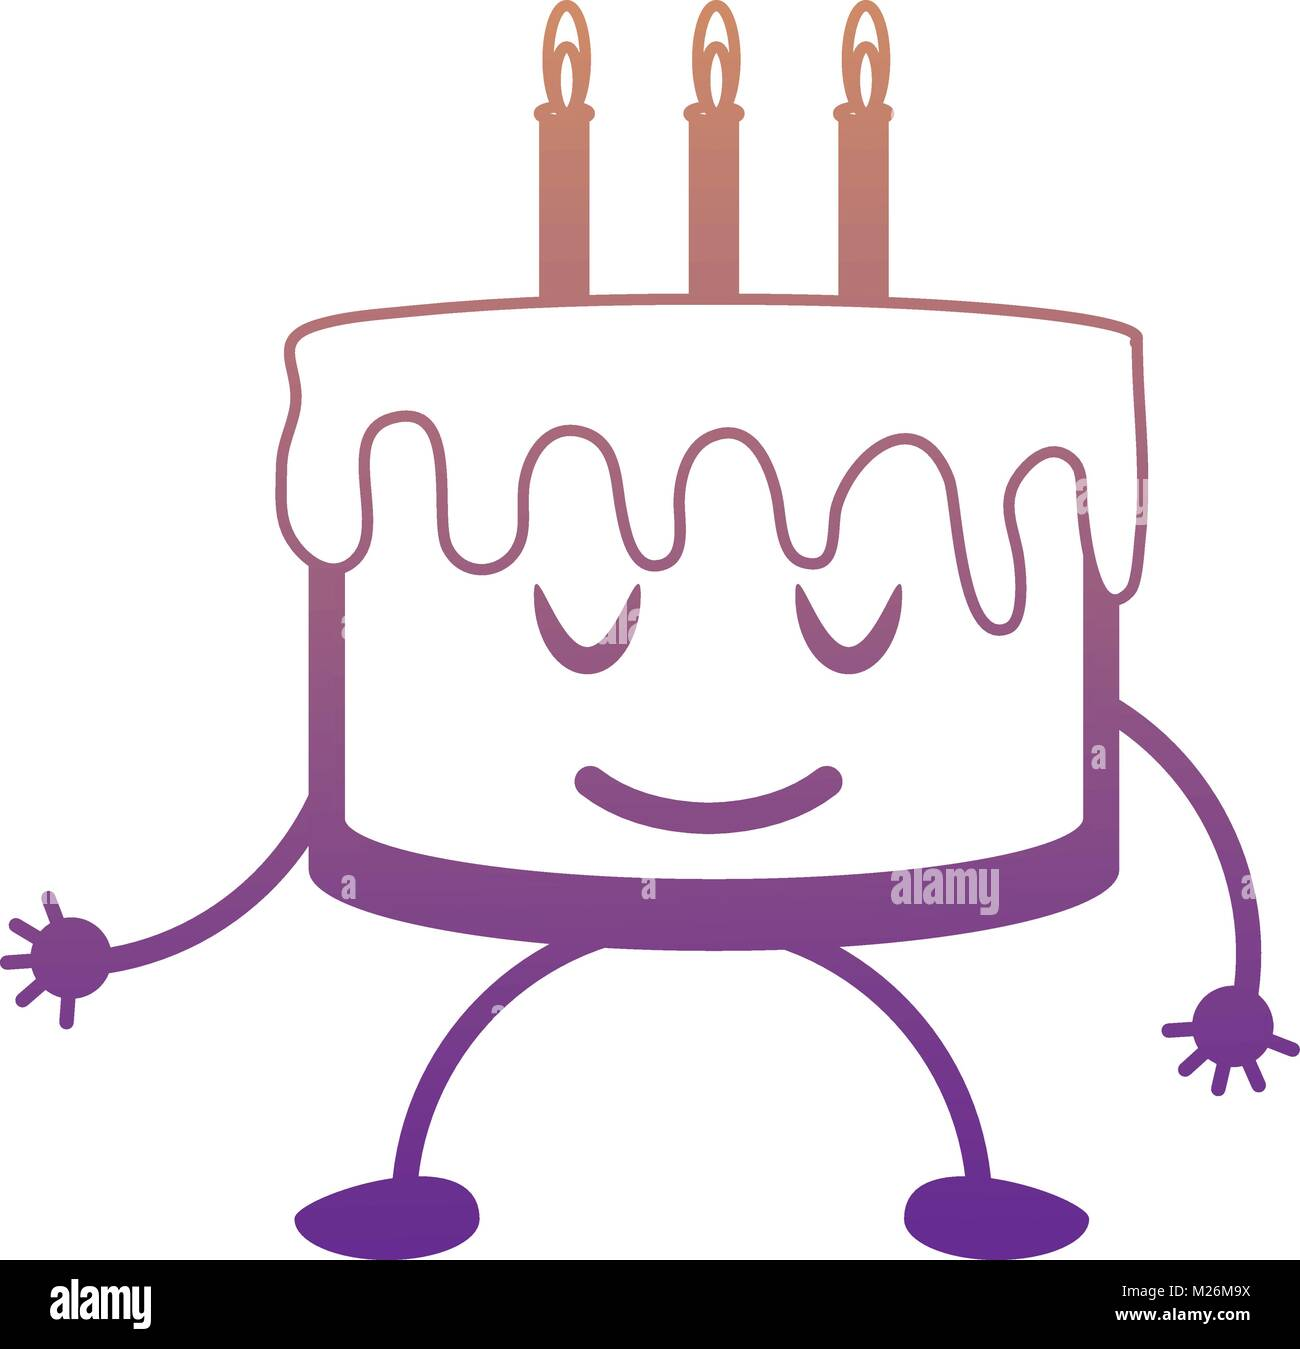 Kawaii Birthday Cake Icon Stock Vector Art Illustration Vector